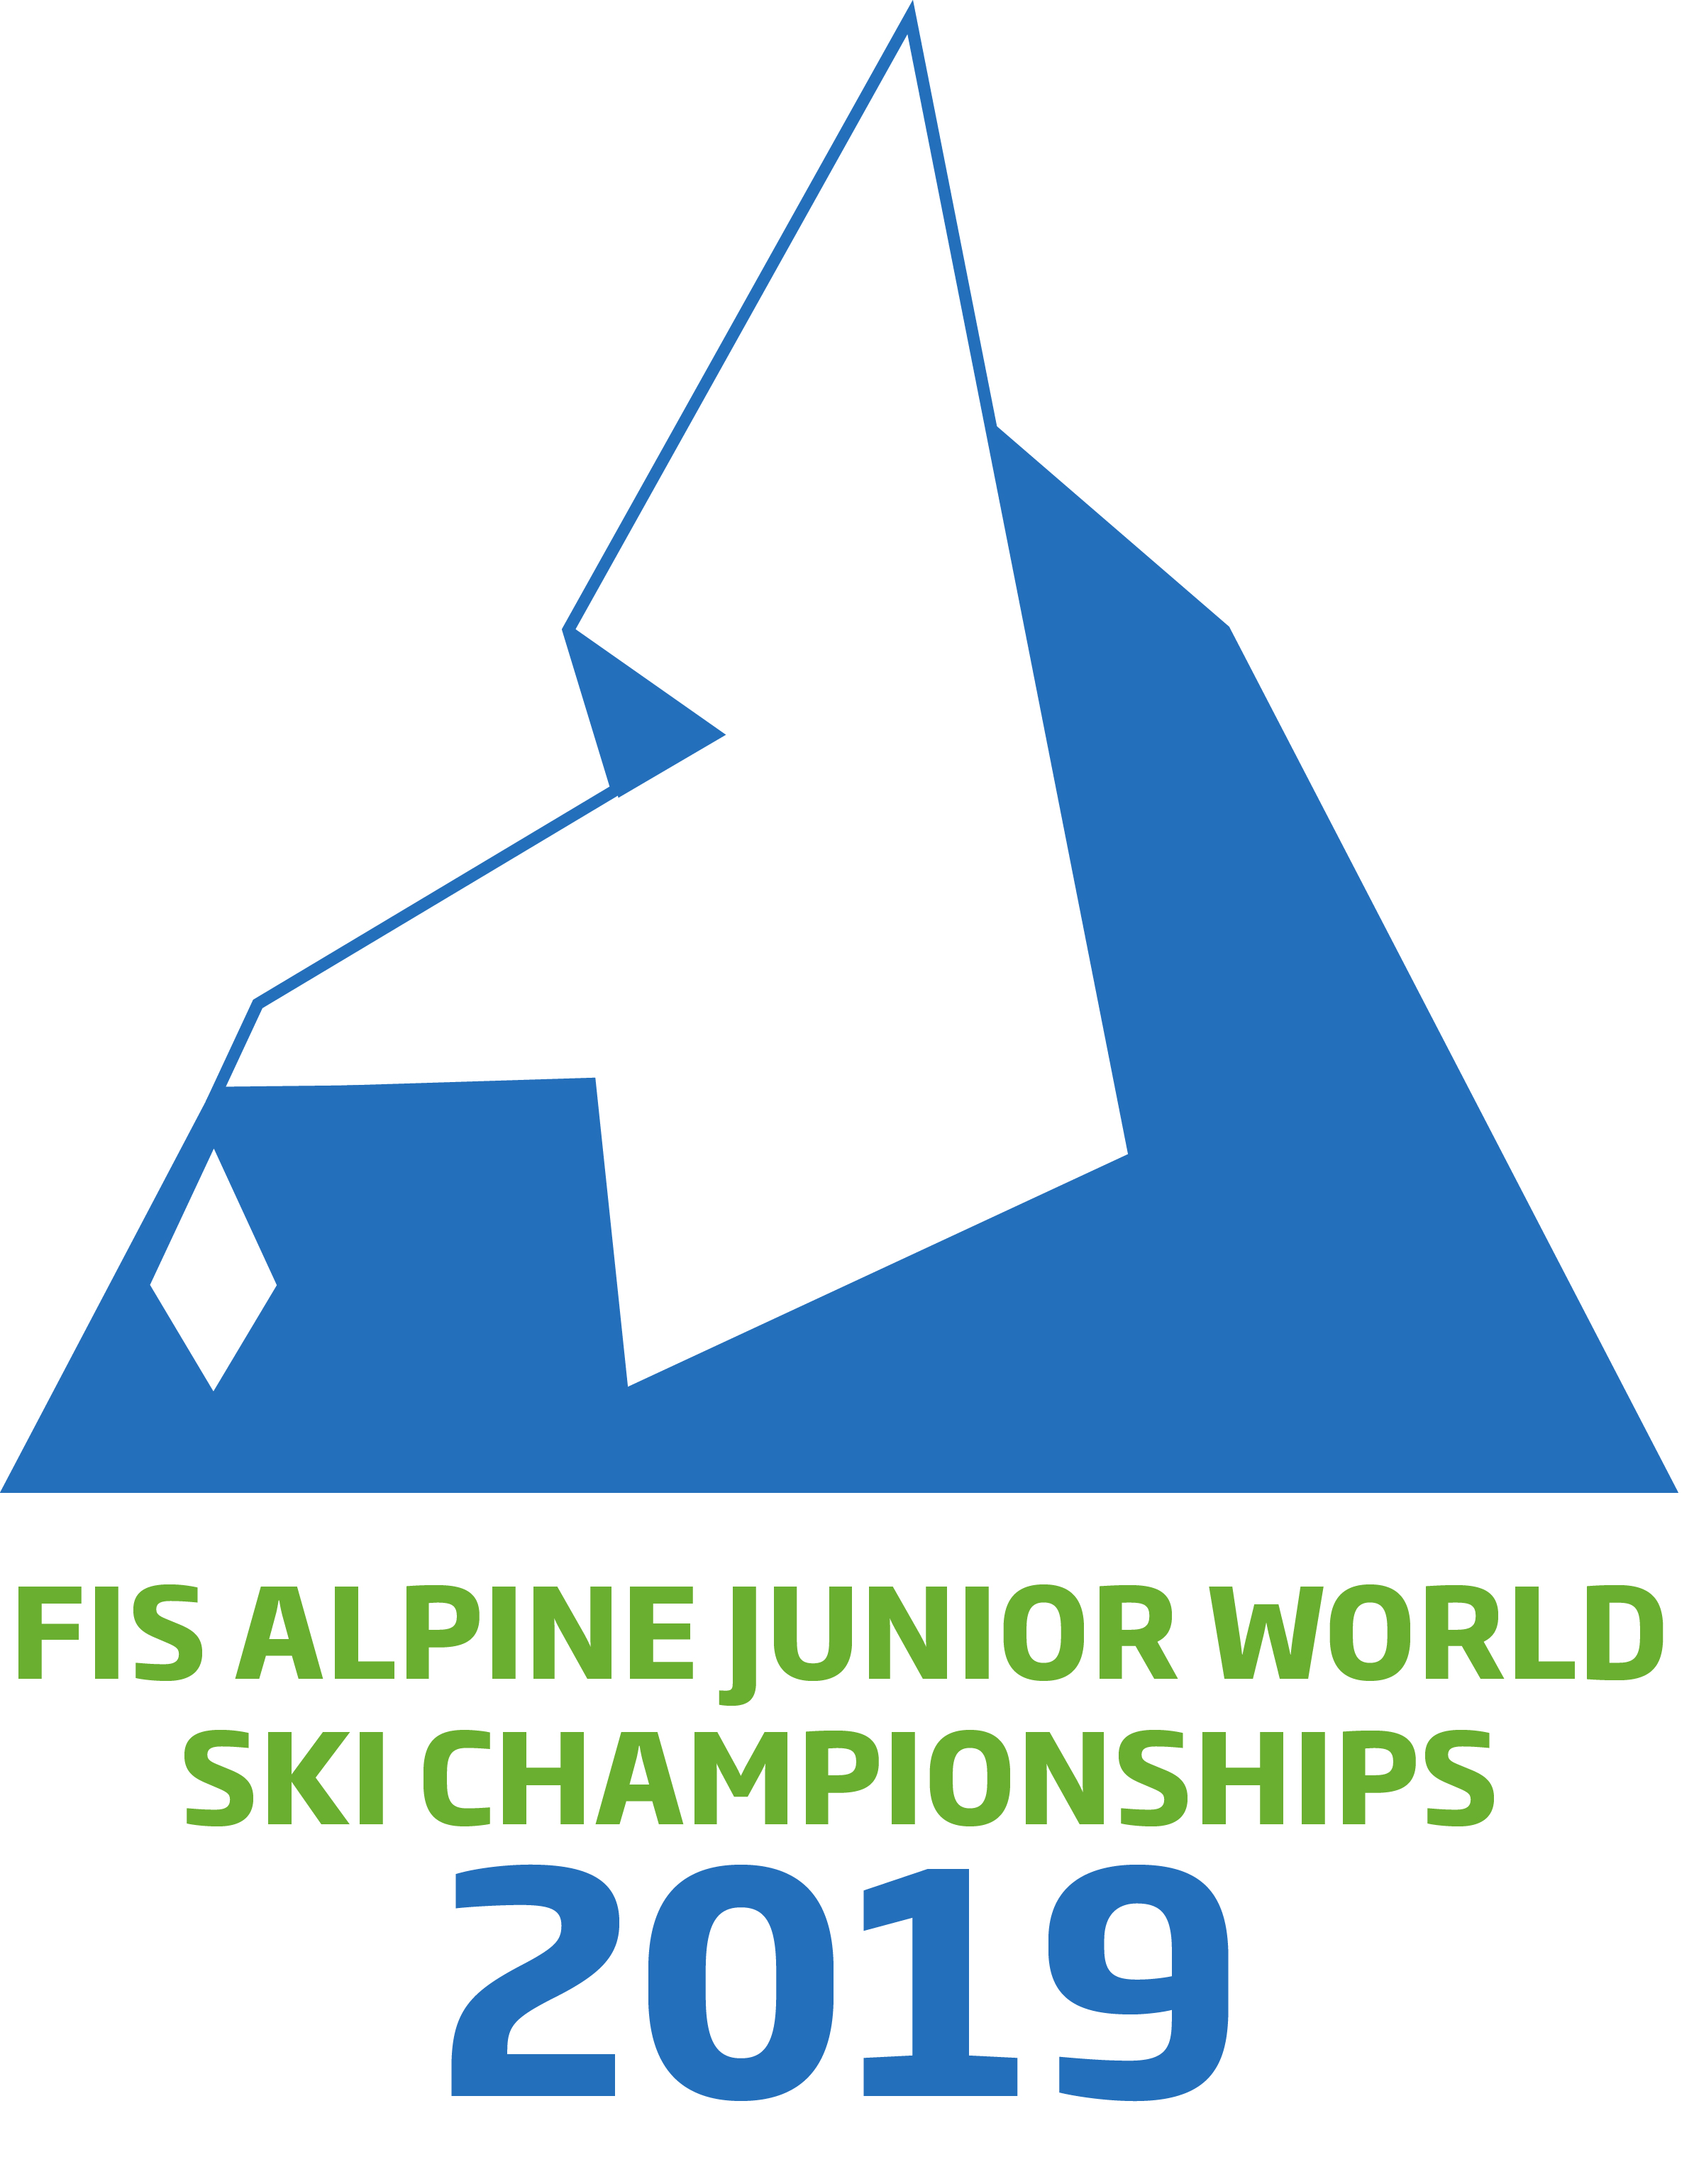 FIS Alpine Junior World Ski Championship